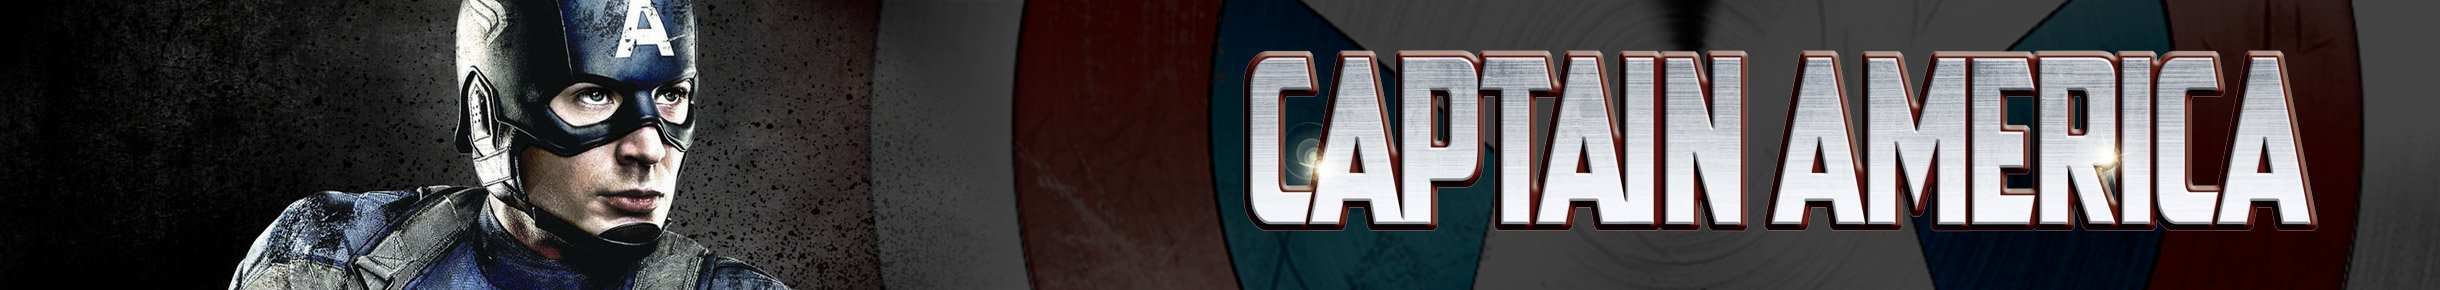 Captain America Rings Banner